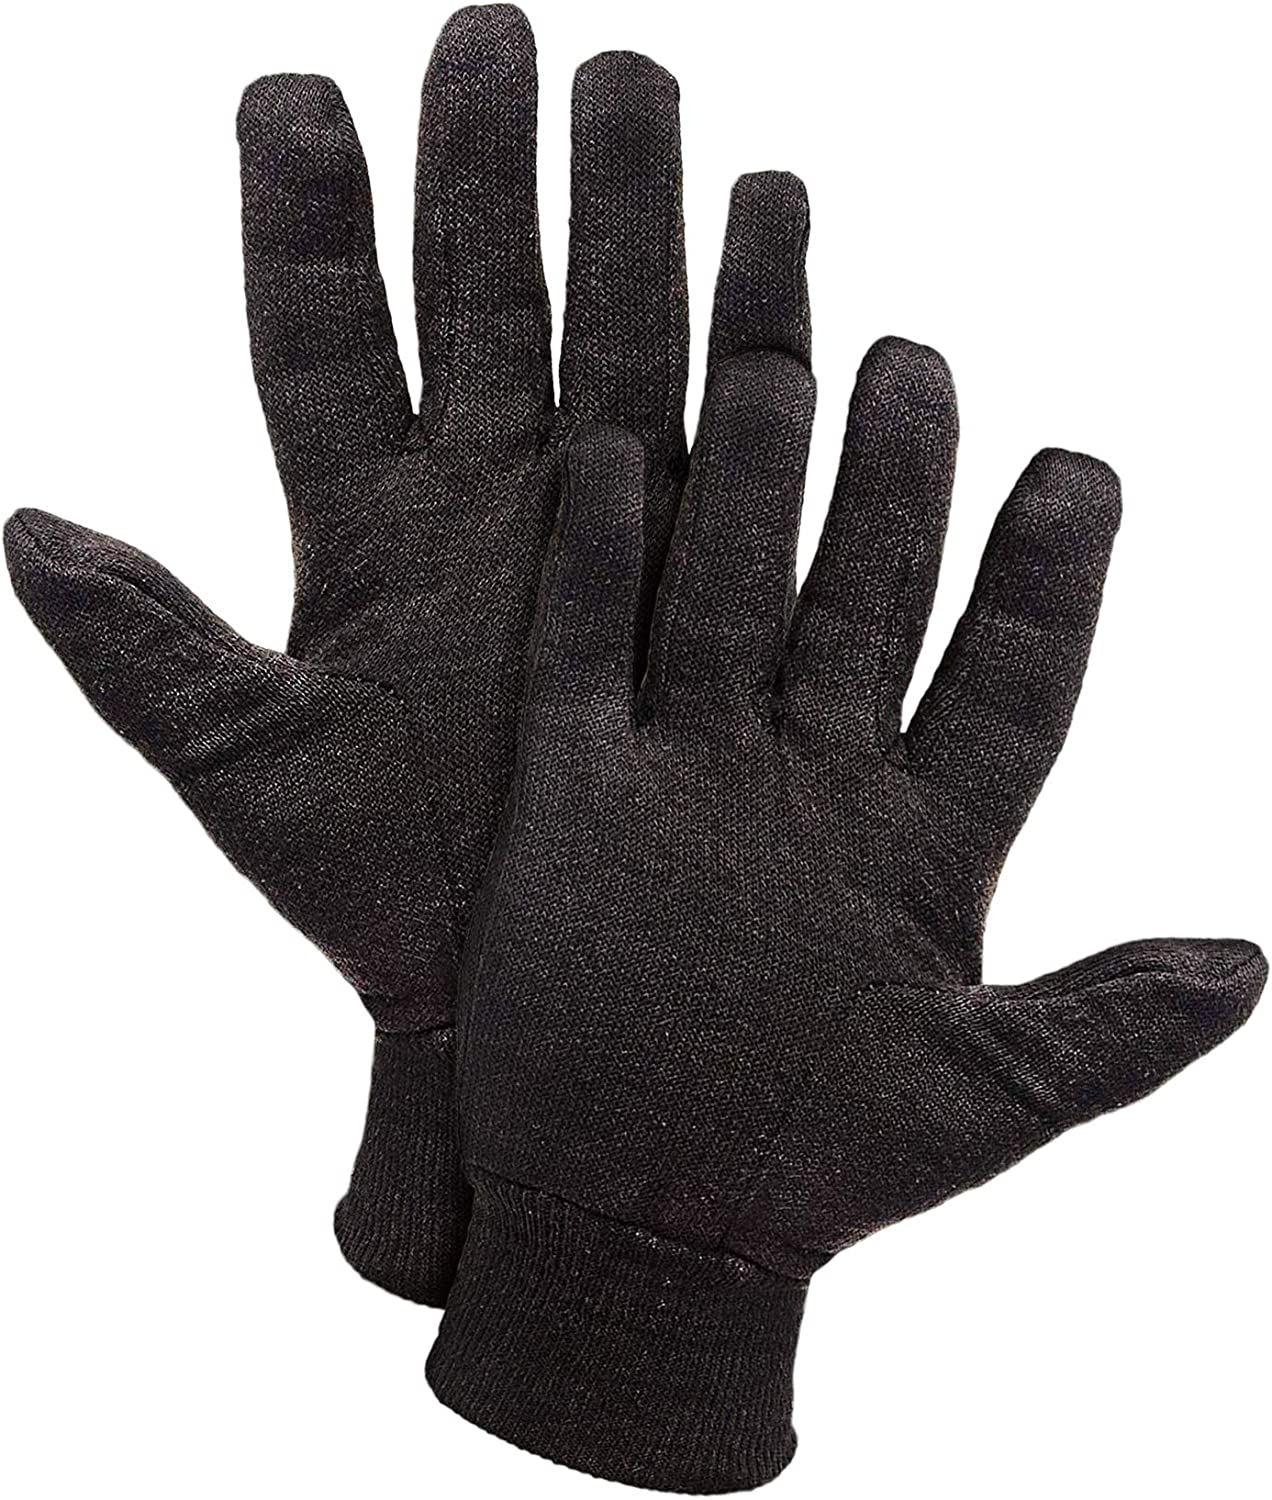 Reusable Jersey Gloves with Elastic Knit Wrist. Cotton Polyester Gloves. Plain Breathable Gloves. Industrial Work Gloves